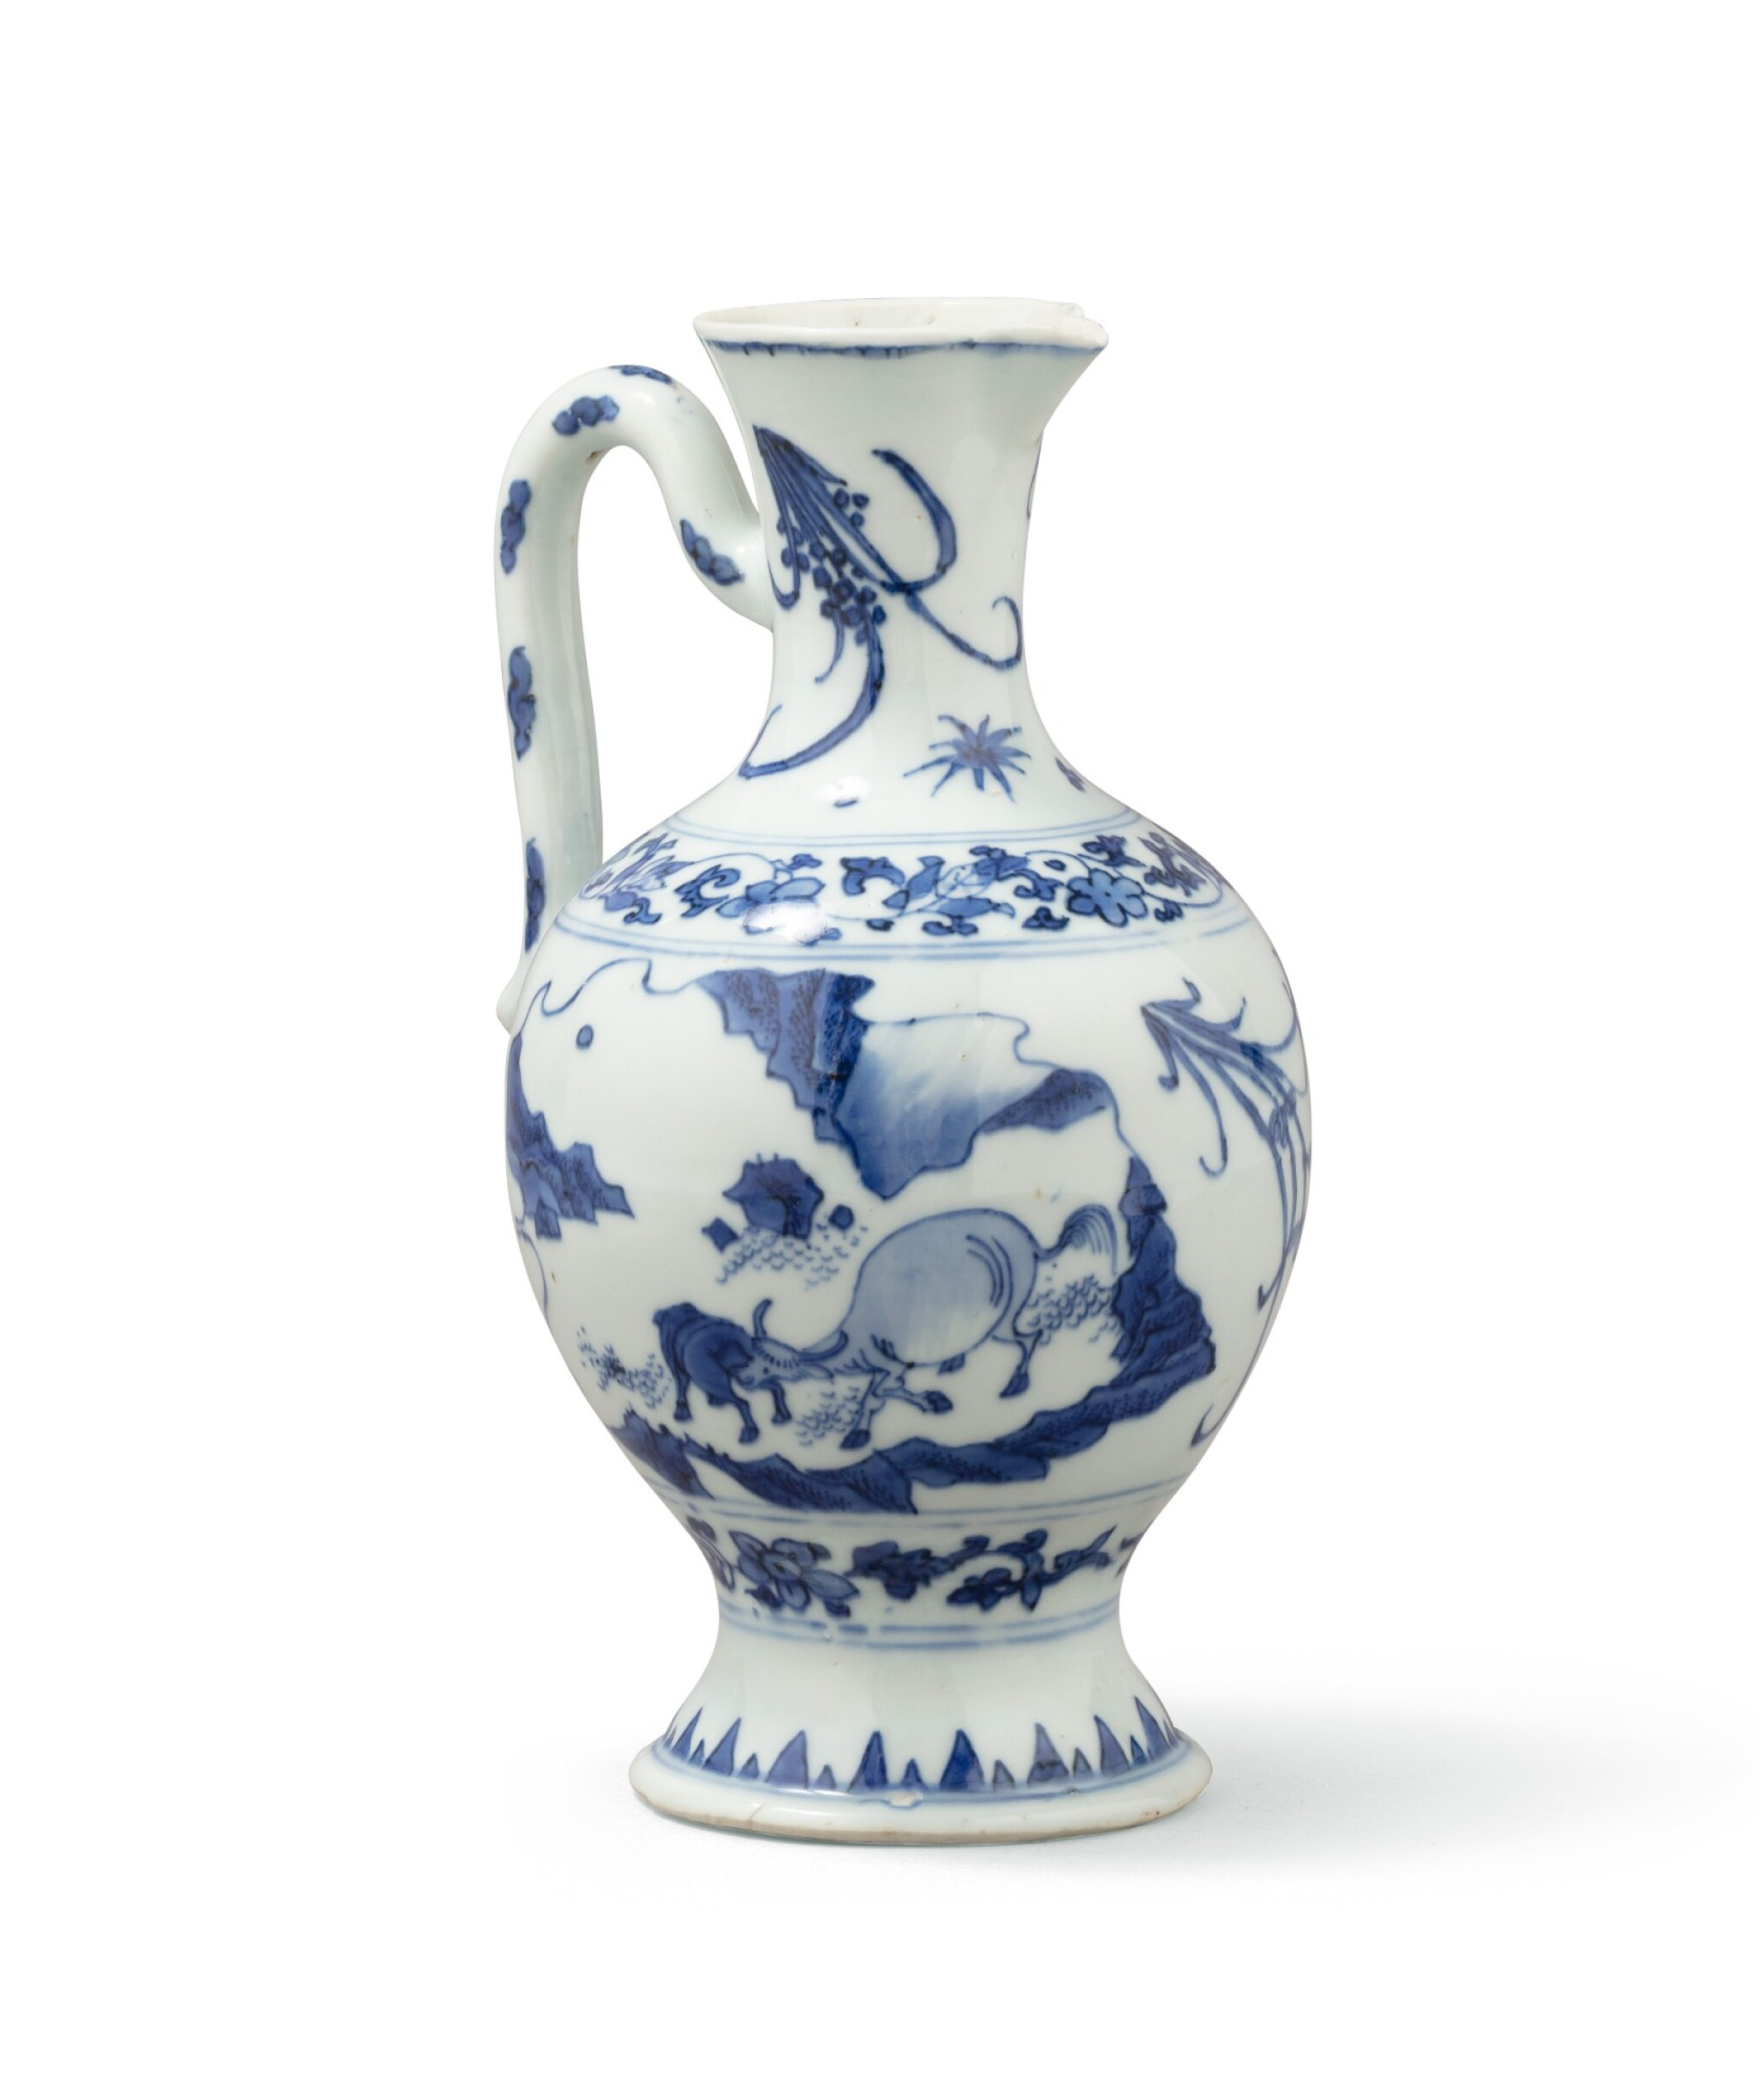 View full screen - View 1 of Lot 378. A blue and white ewer, China, Qing Dynasty, 19th century.